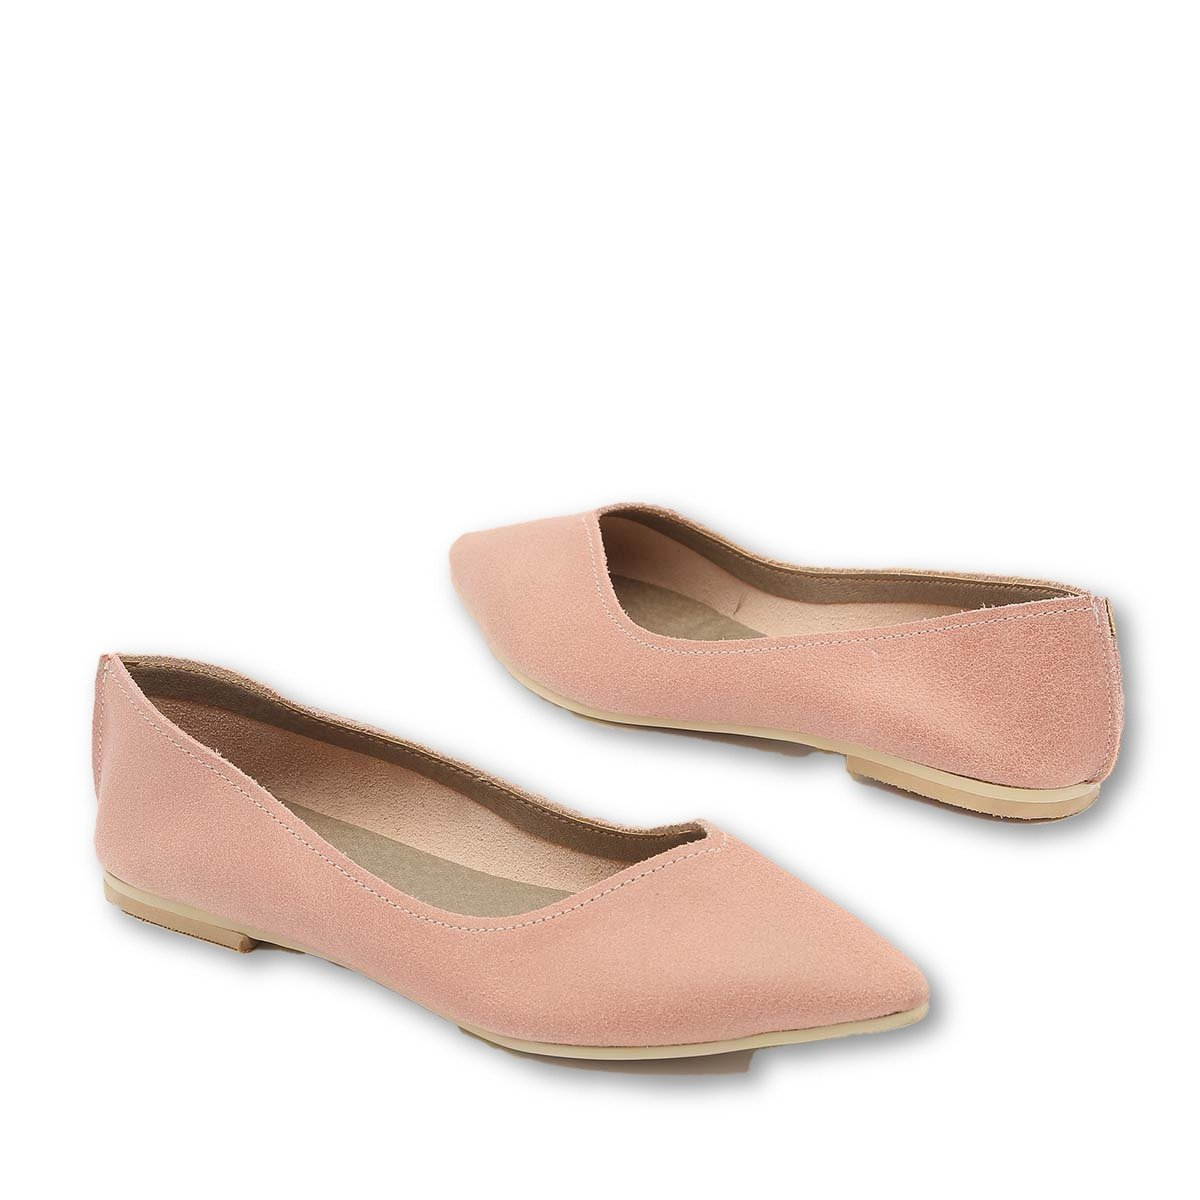 B-Unique Ballet Flats for Women Italian Leather Flat Women's Shoes Slip On Loafer Comfort Pointy Toe B07BLXPLSJ 9.5 B(M) US|Pink